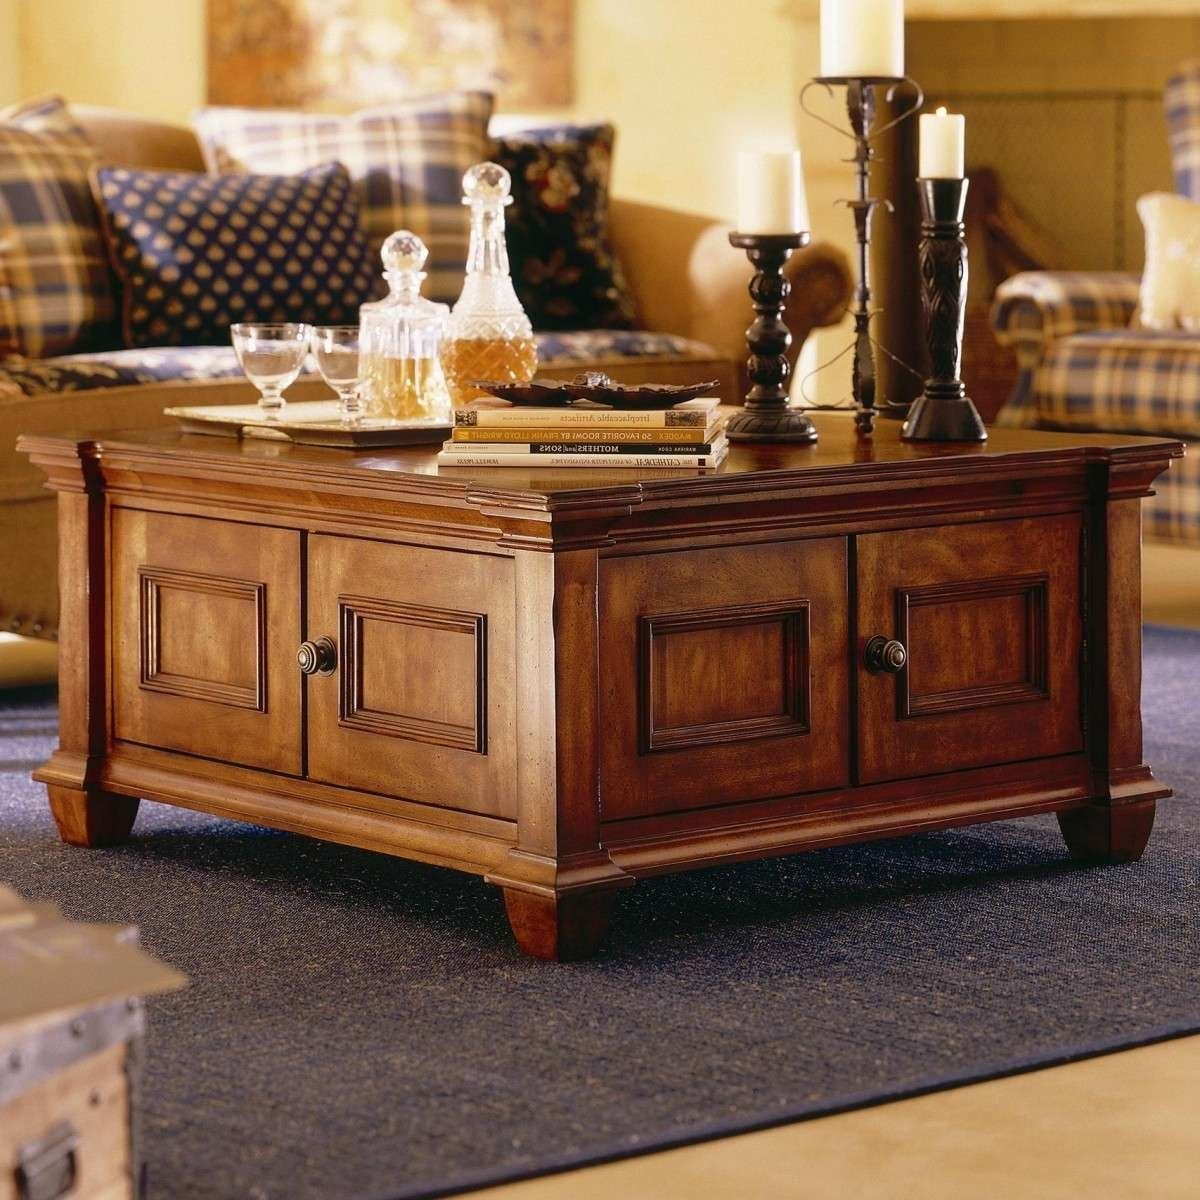 Widely Used Square Coffee Tables With Storage Inside Coffee Tables : Square Coffee Table With Storage Cubes Drawers (View 18 of 20)